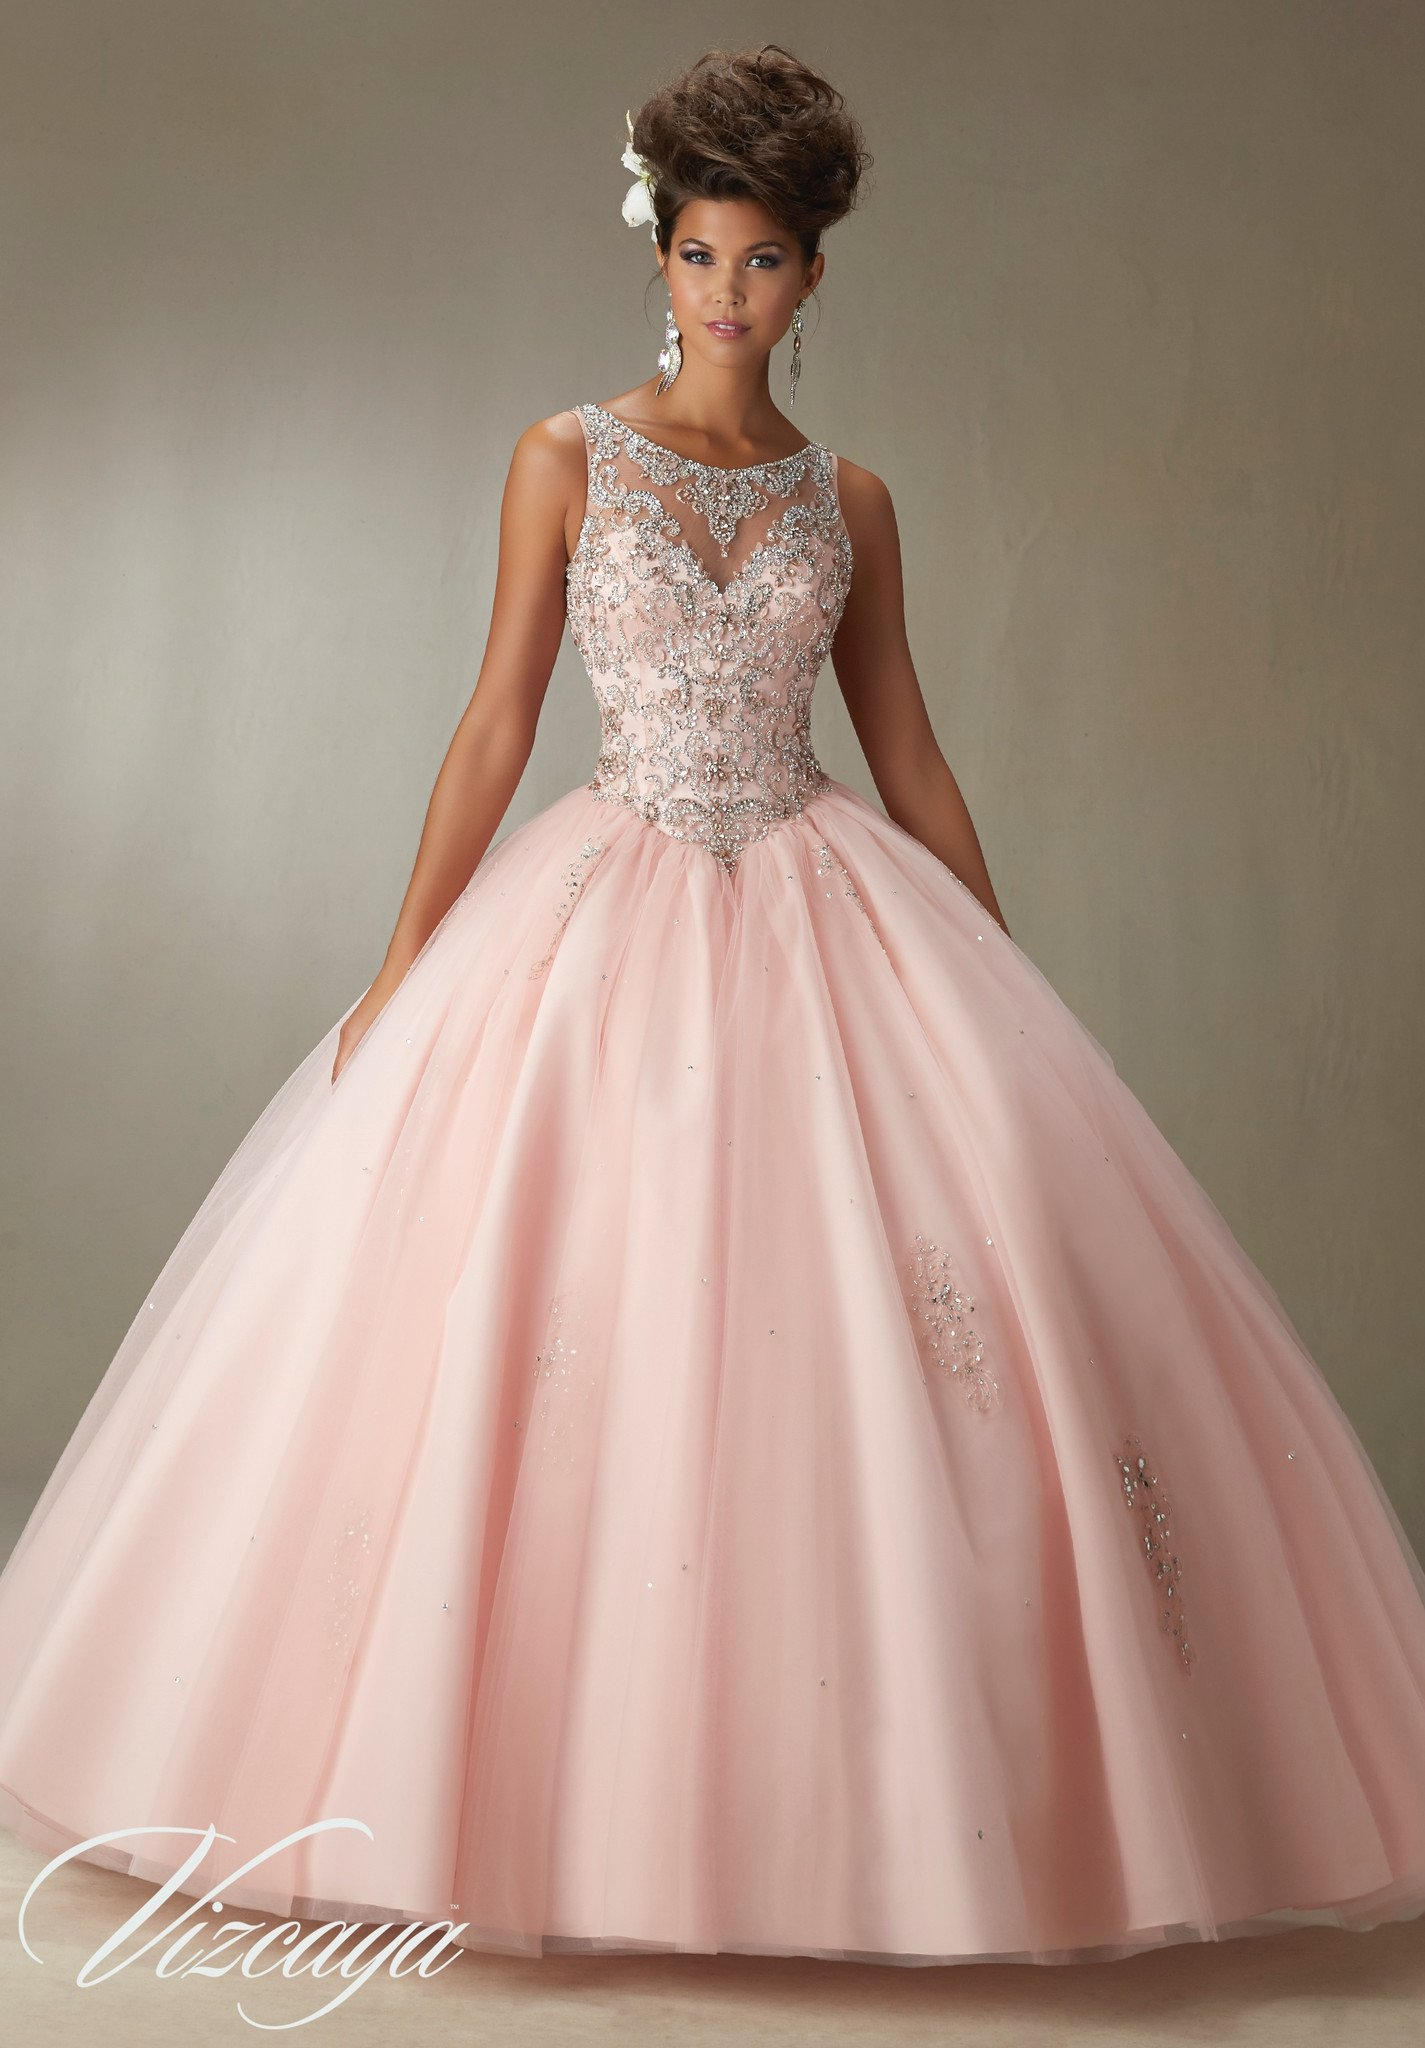 Mori Lee Quinceanera Dress 89067 | 15 años, Quinceañera y Años